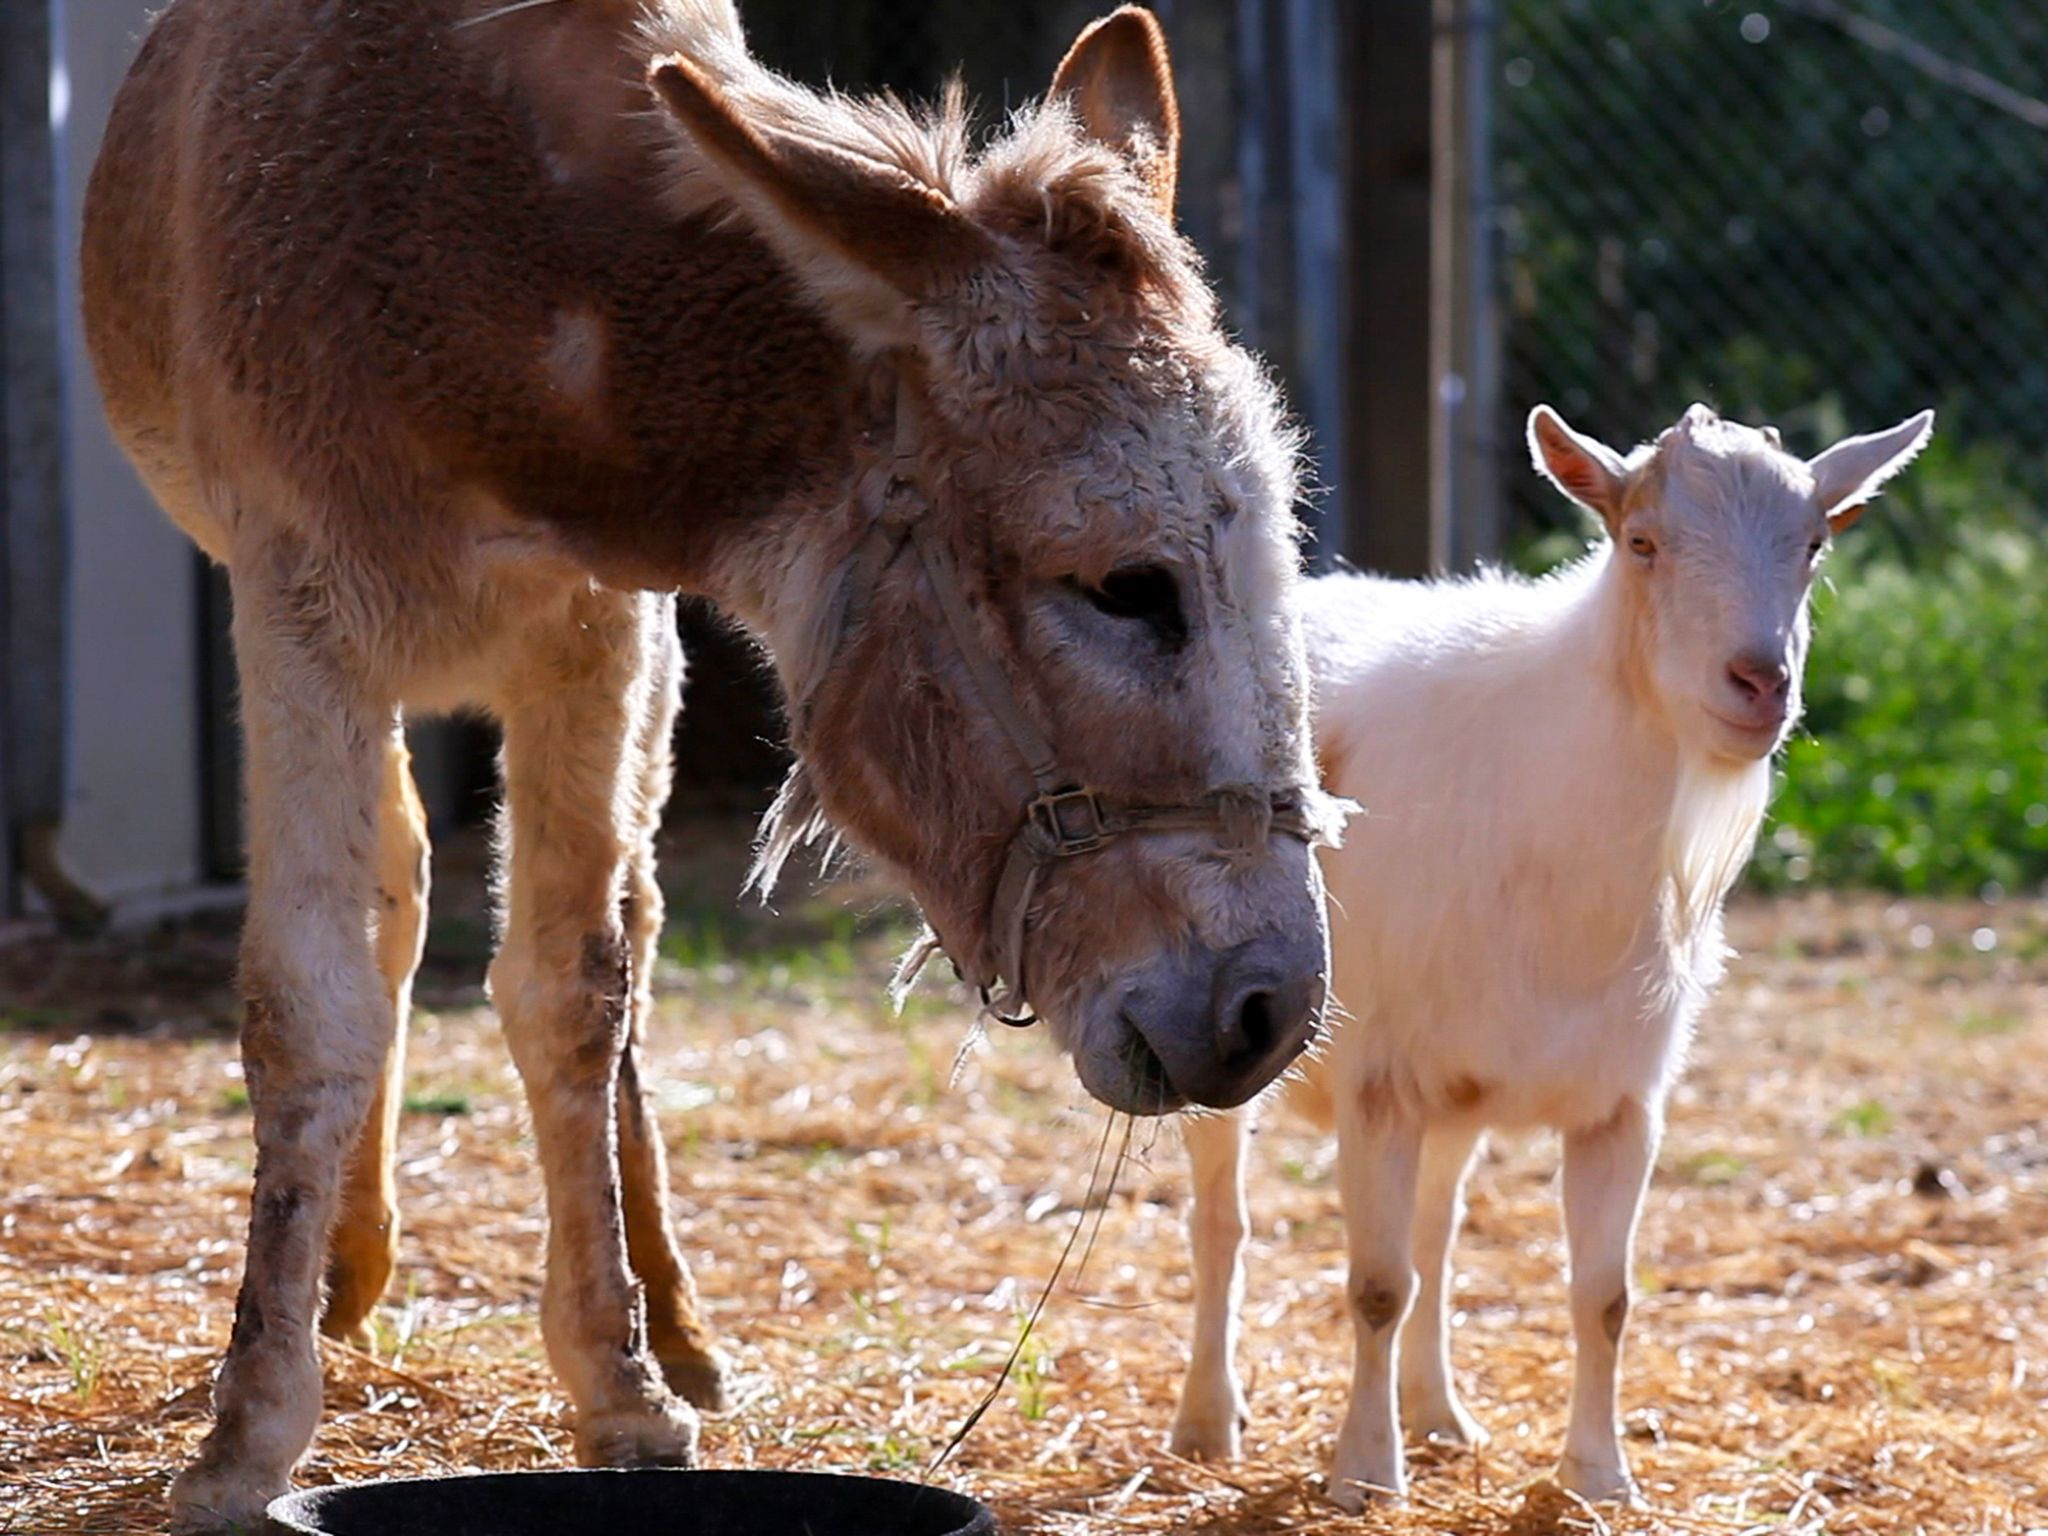 Grass Valley, CA.:  Unlikely animal friends Jellybean, a donkey, and  Mr. G, a goat, stand side-b... [Photo of the day - april 2015]